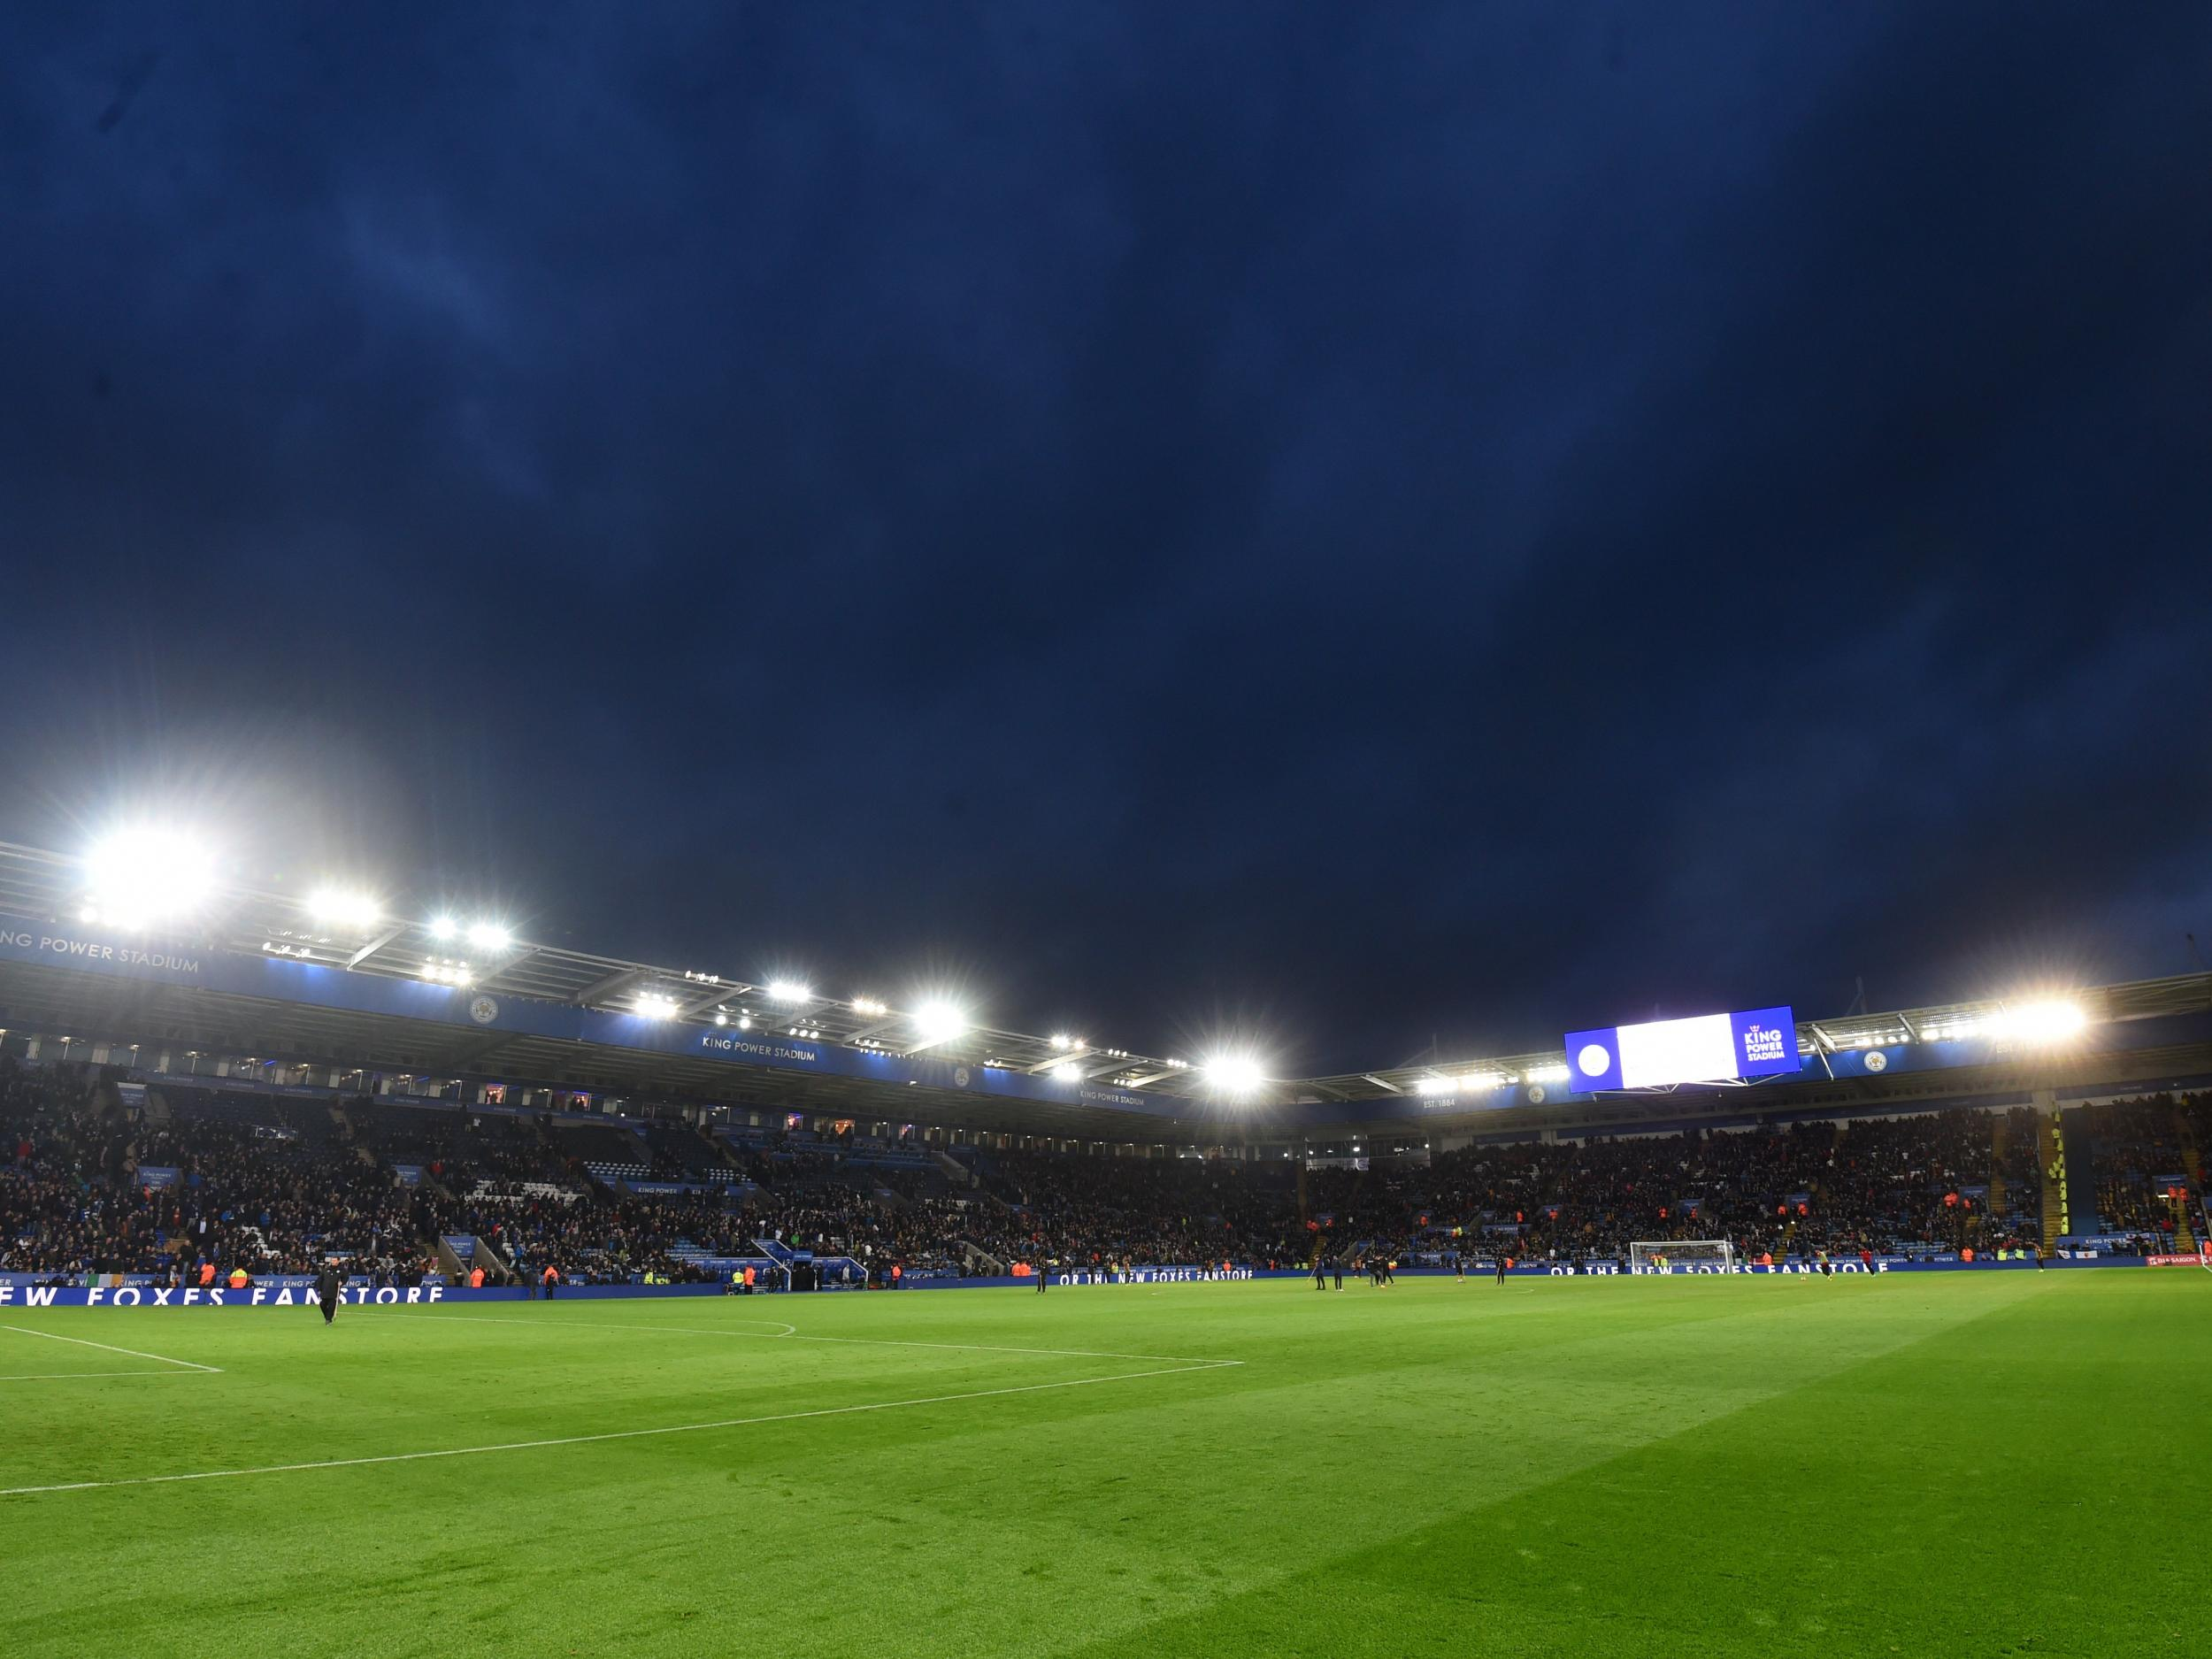 Leicester vs Tottenham LIVE: What time does it start, TV channel, team news, odds and predictions